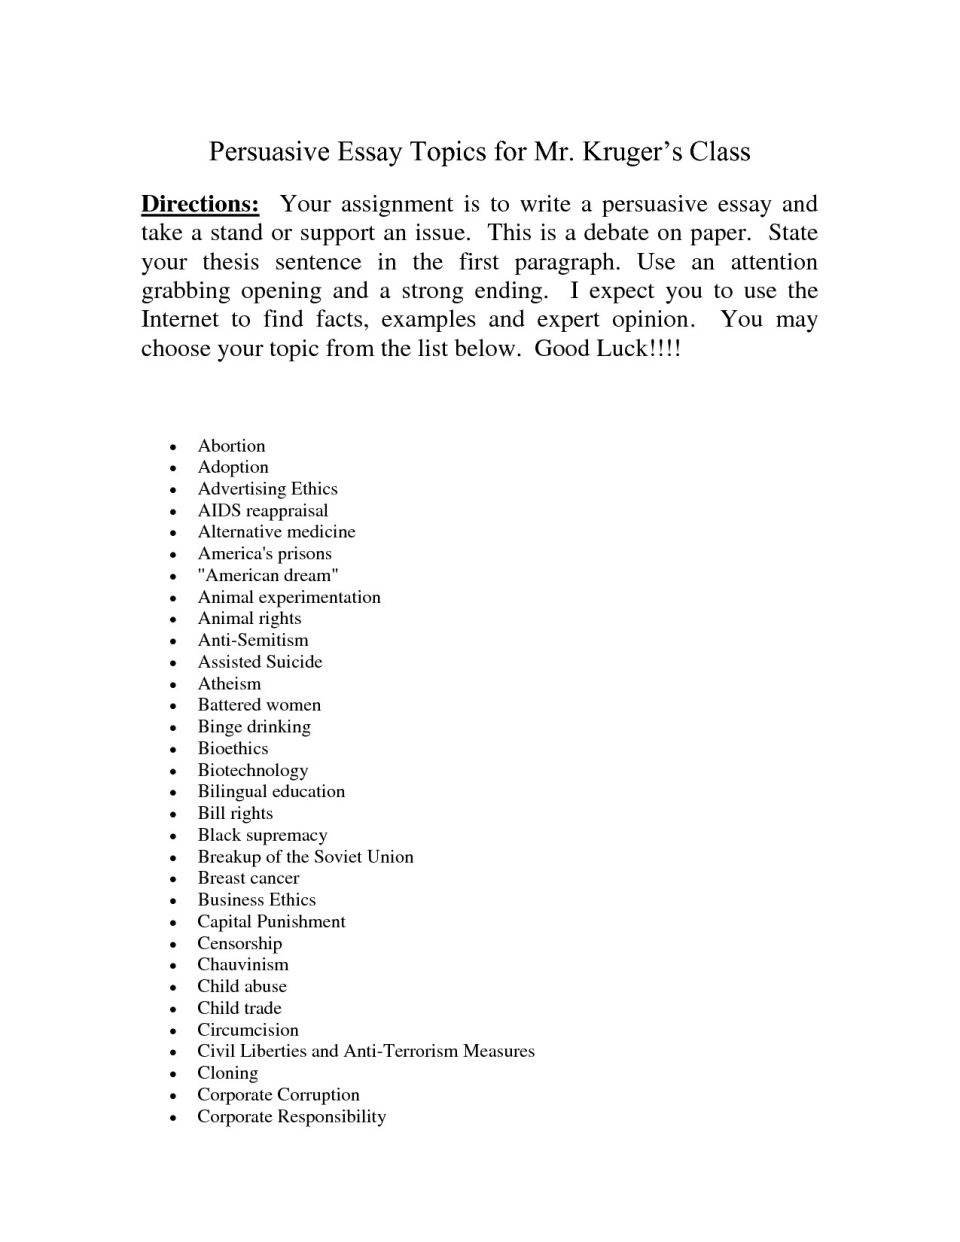 016 Topic For Essay Barca Fontanacountryinn Within Good Persuasive Narrative Topics To Write Abo Easy About Personal Descriptive Research Paper Informative Synthesis College 960x1242 Magnificent Great Papers Interesting Us History Full